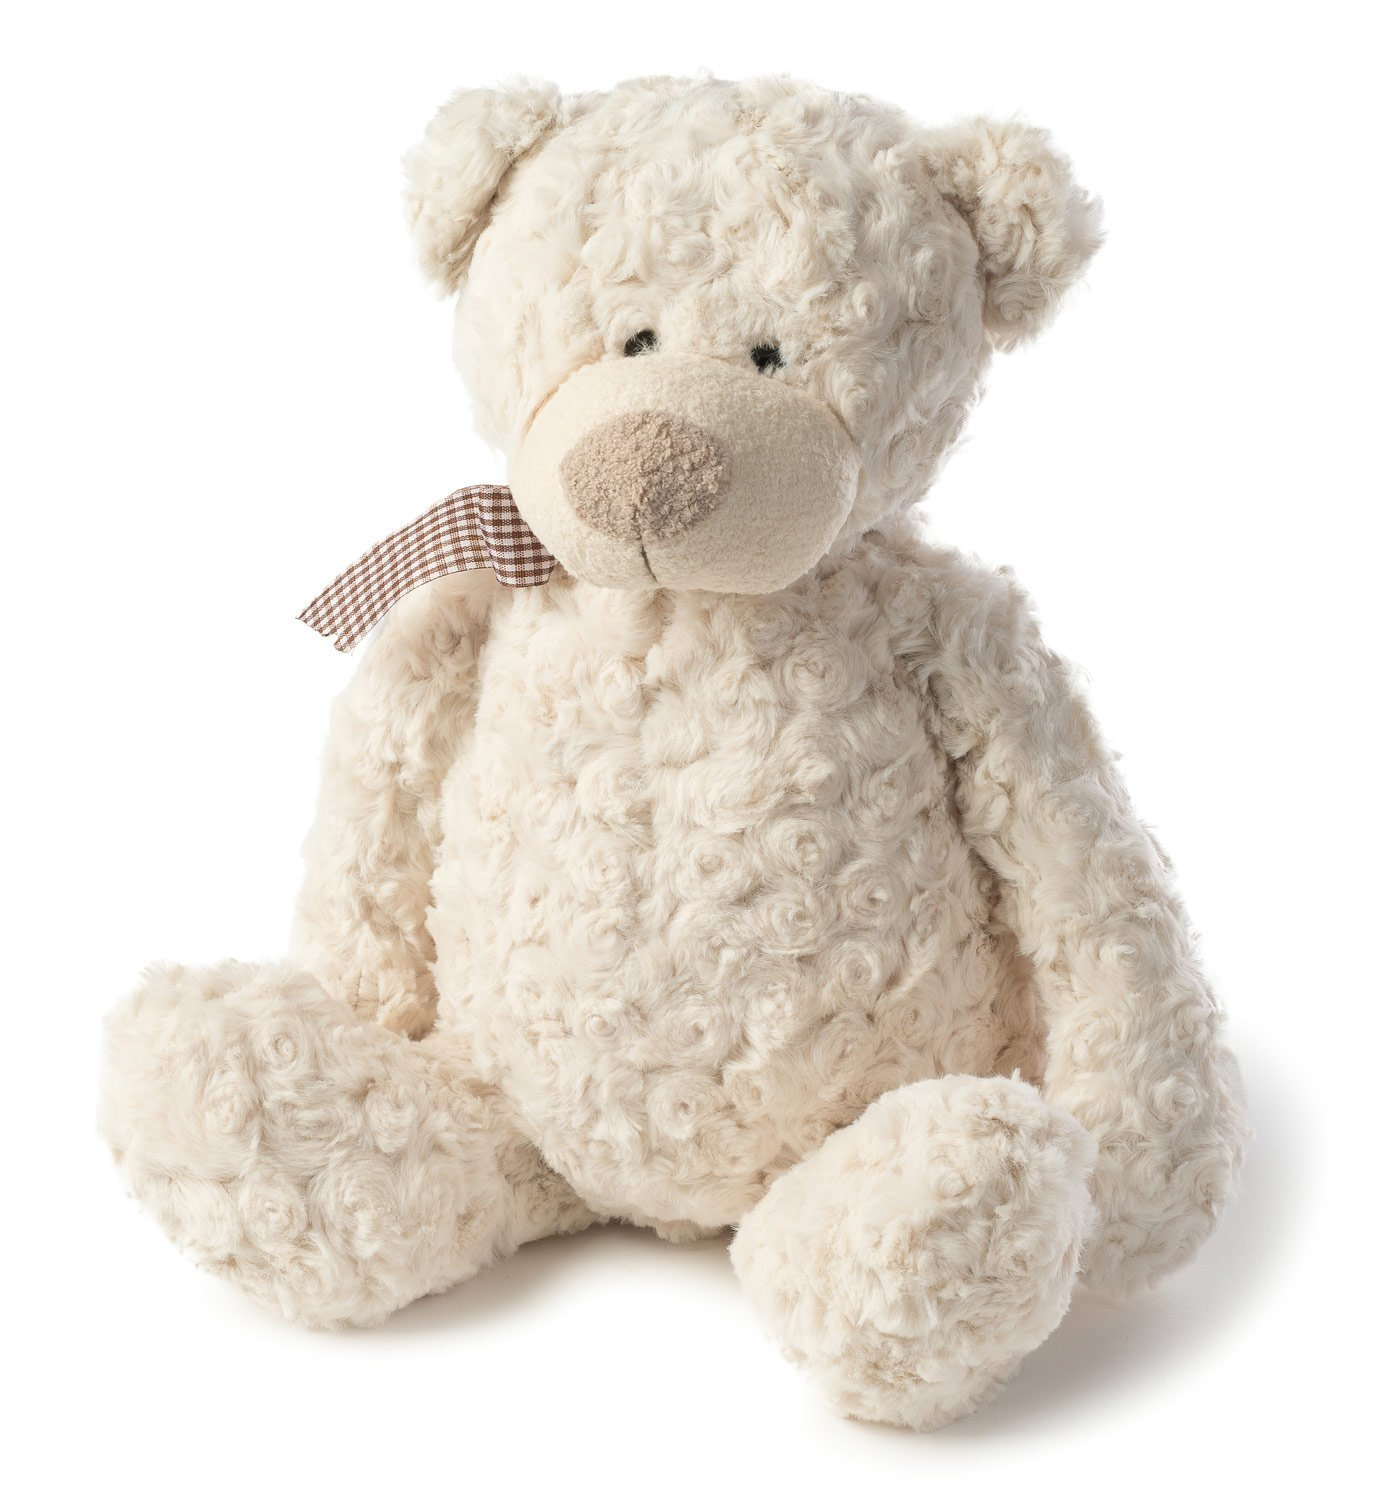 Joon Freddy Rosy Plush Teddy Bear, Cream, 10 Inches by Joon